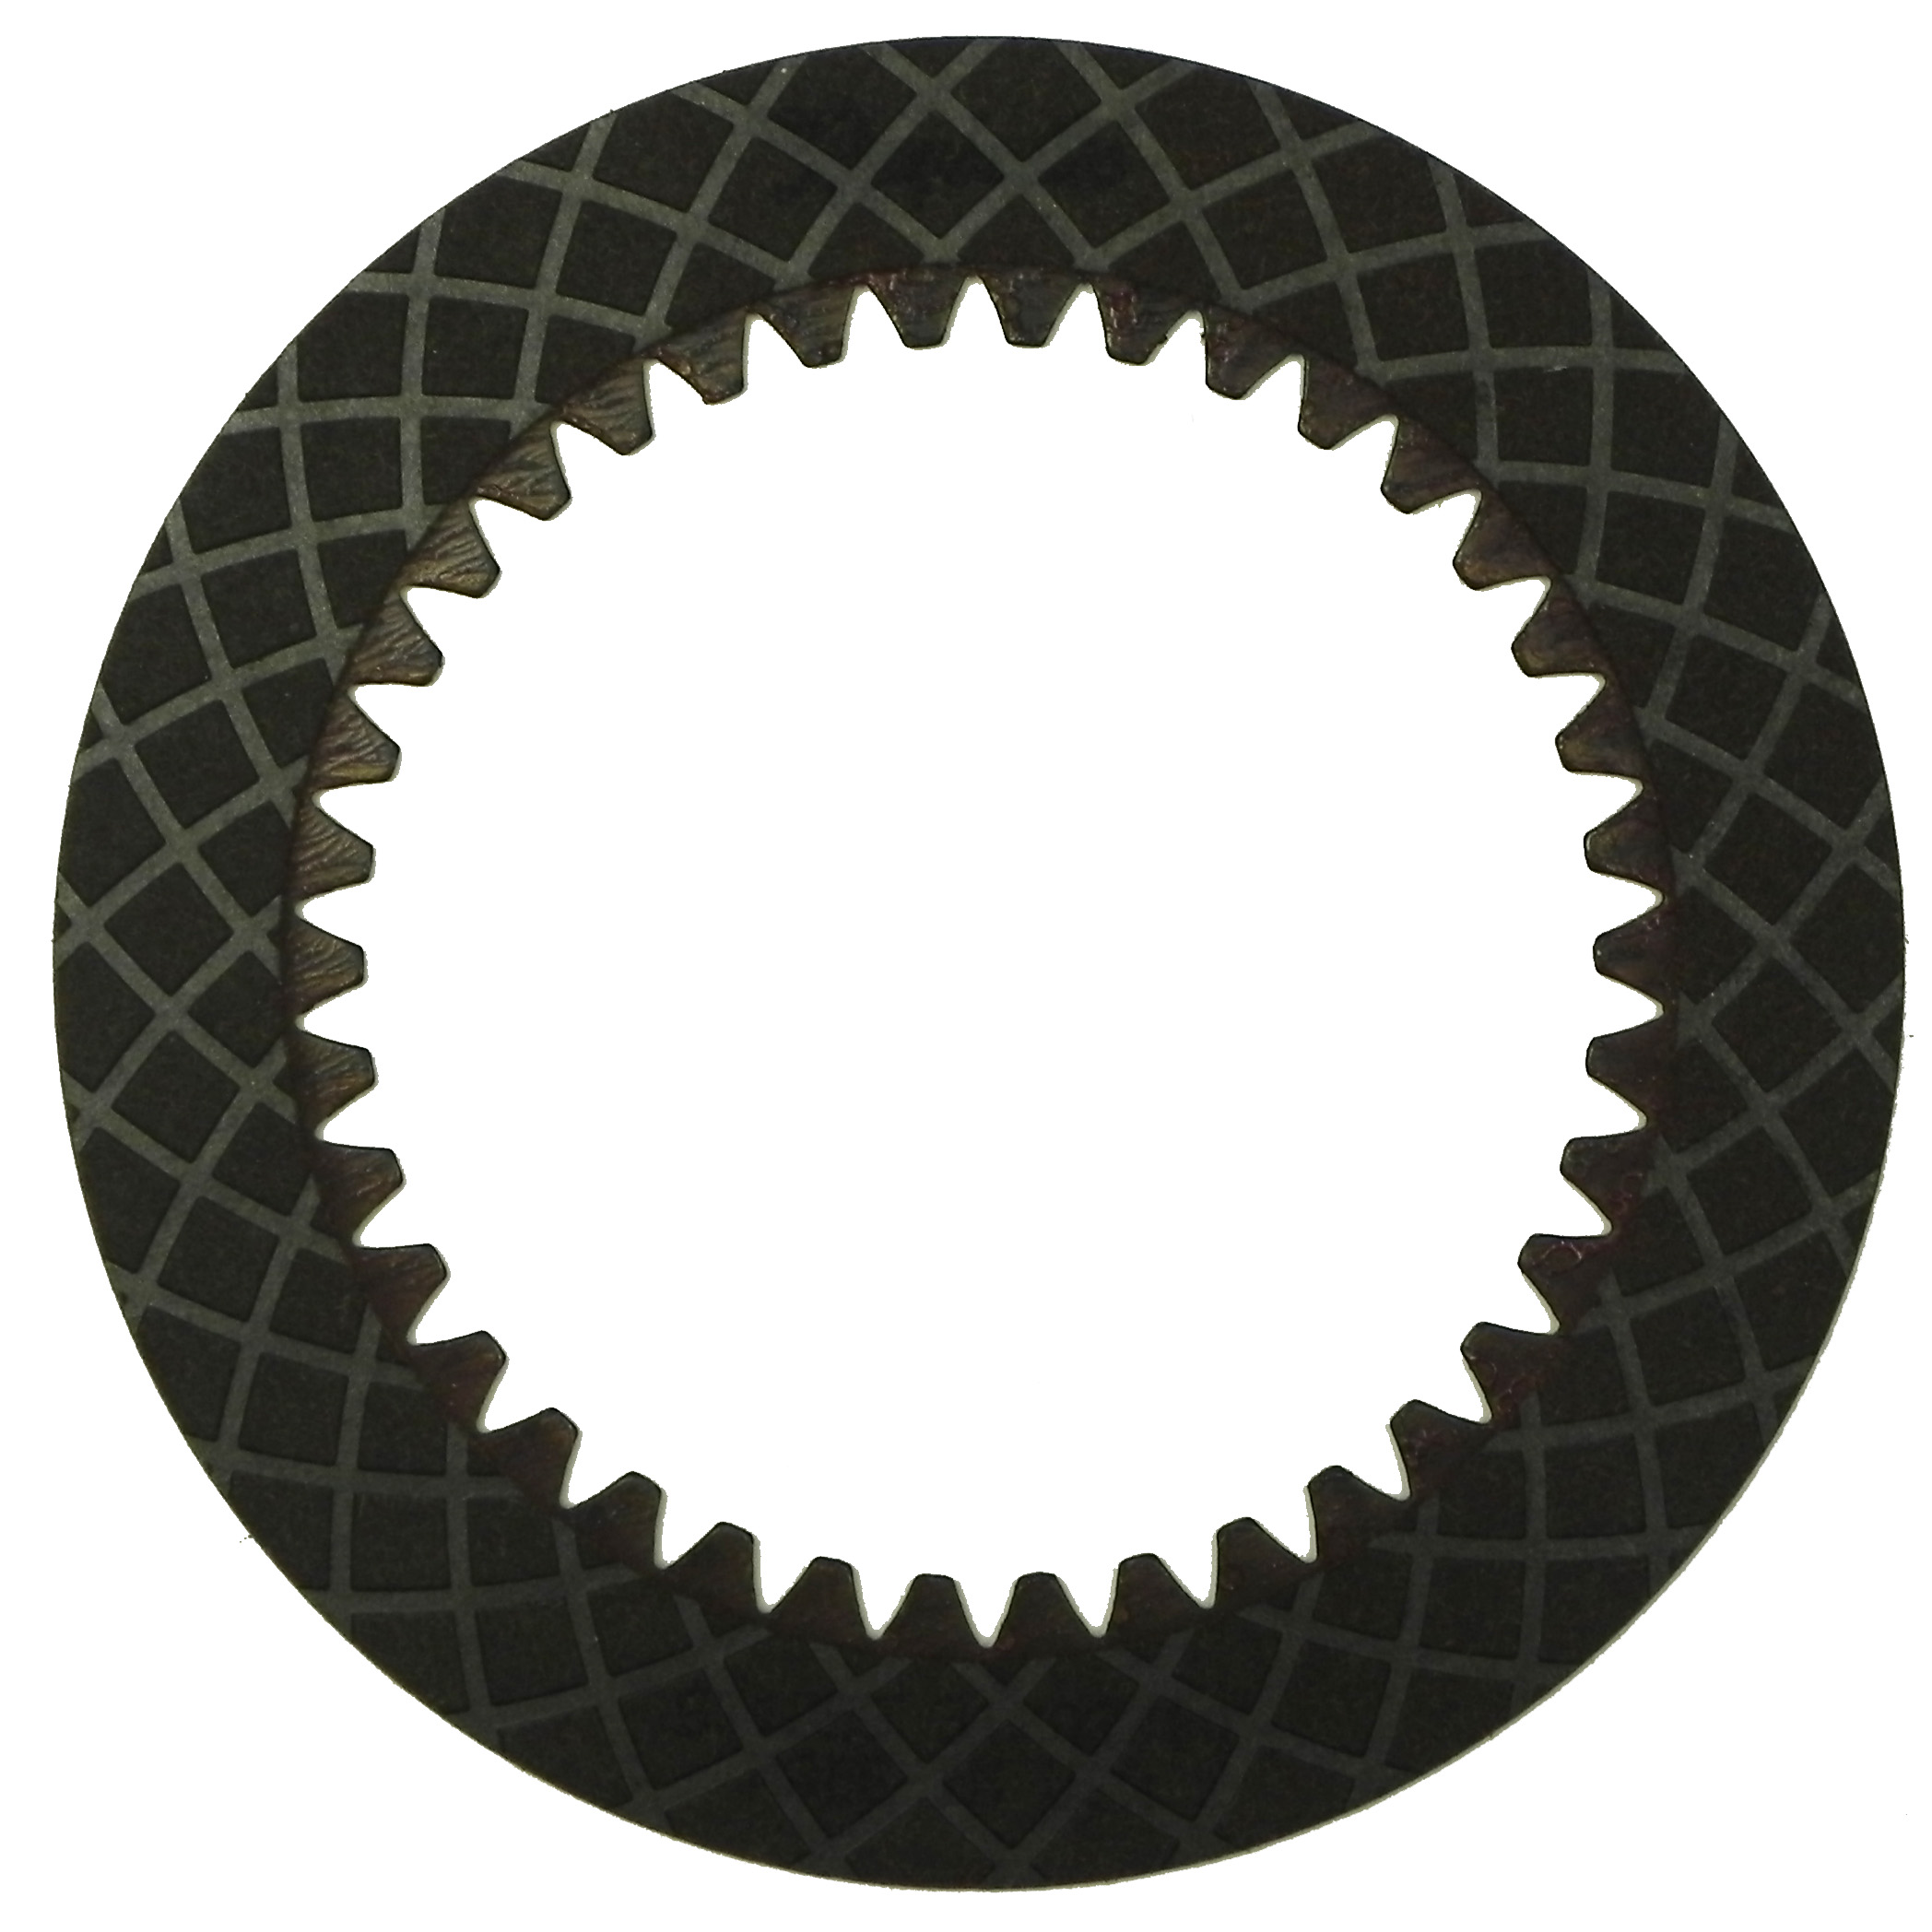 R571855 | 1992-2000 Friction Clutch Plate GPX 1st, 2nd, 3rd, 4th GPX